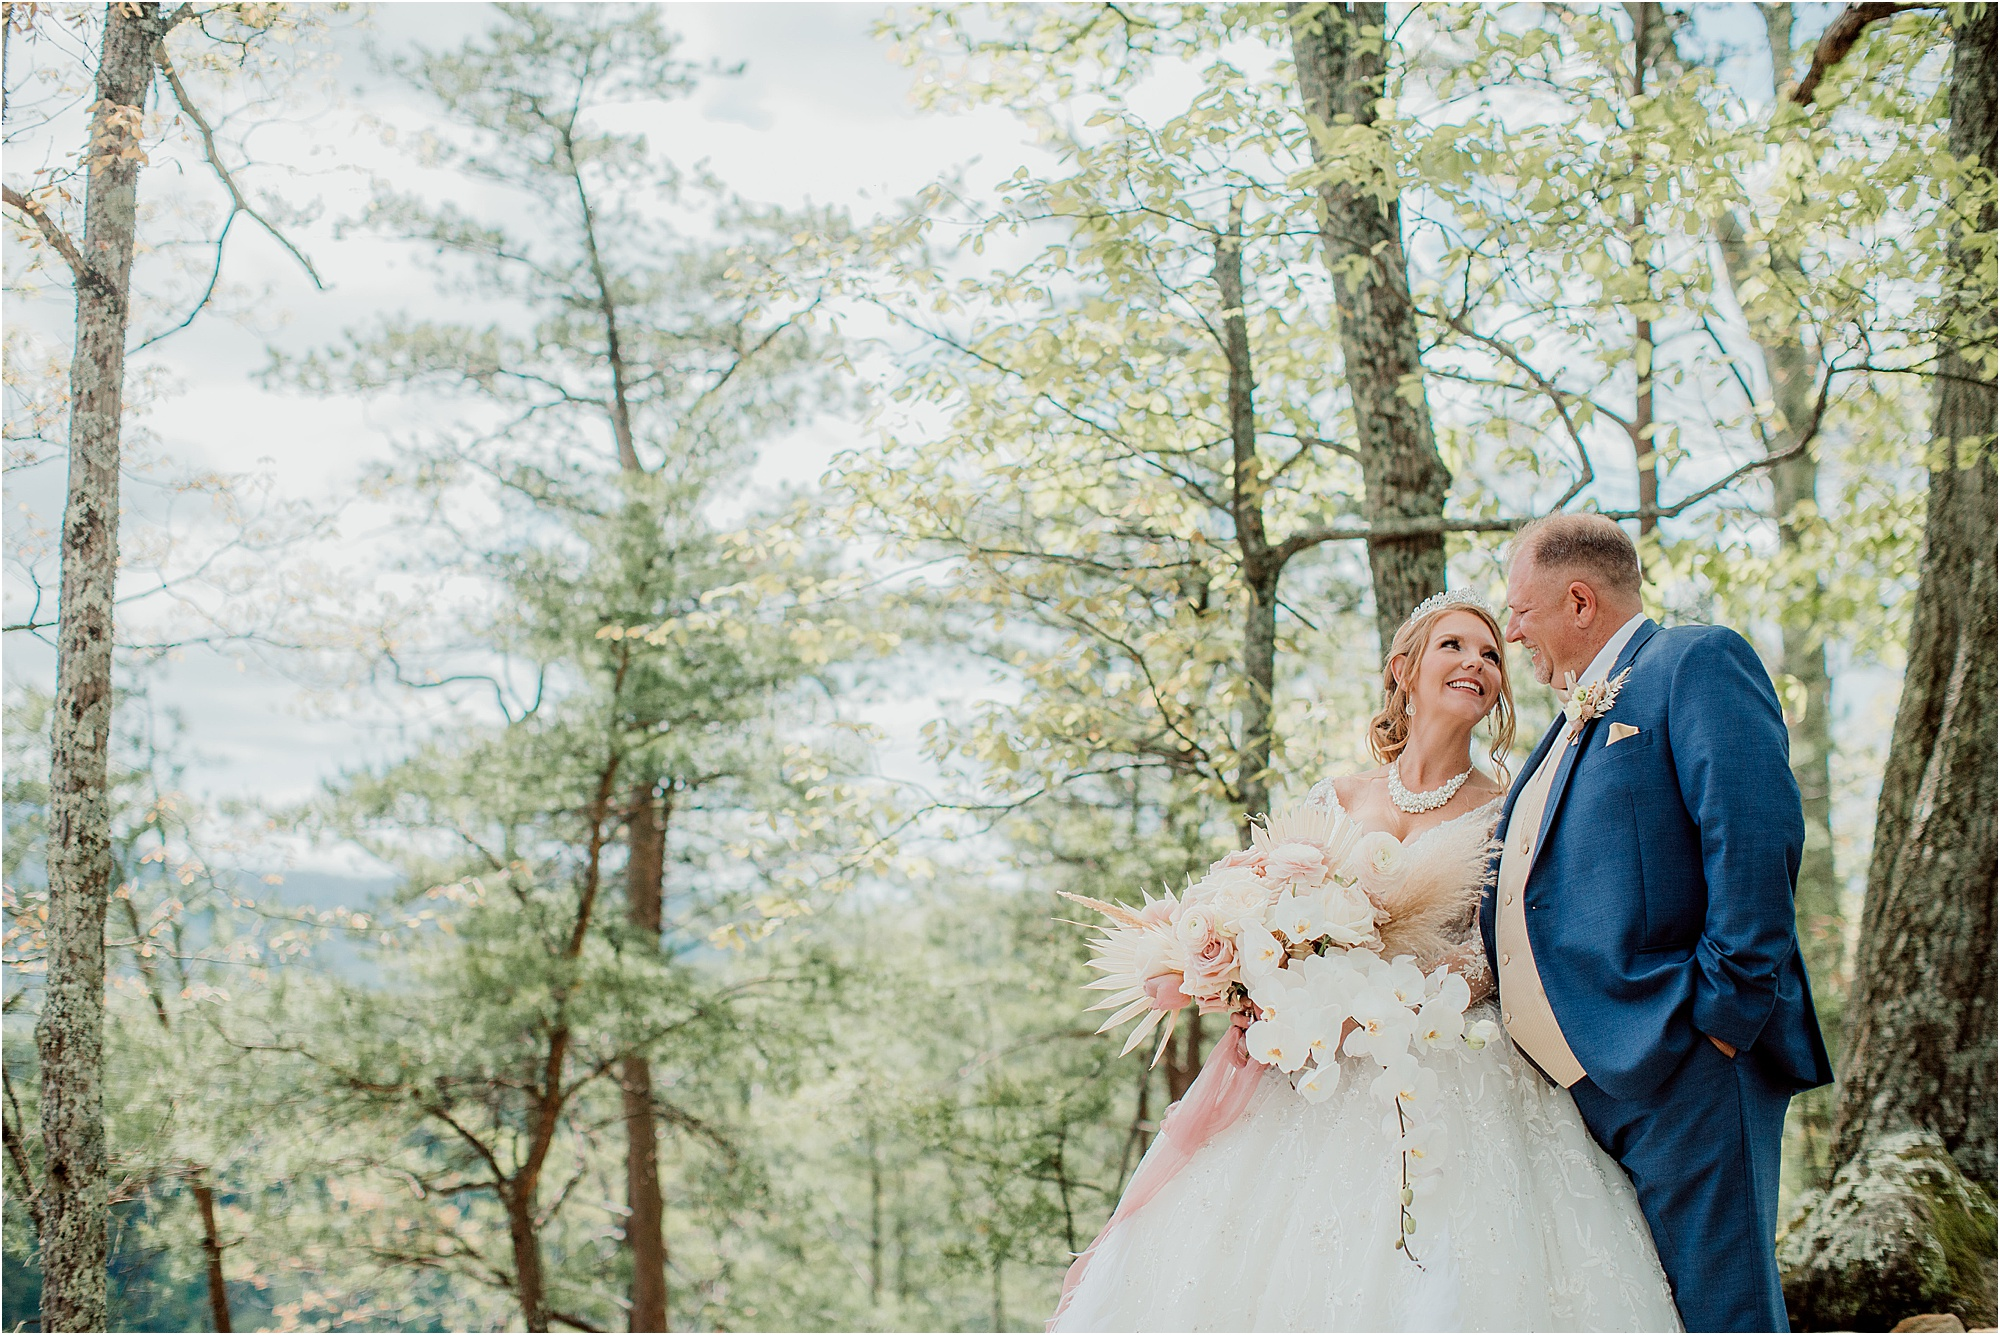 Fairytale wedding in the Smoky Mountains